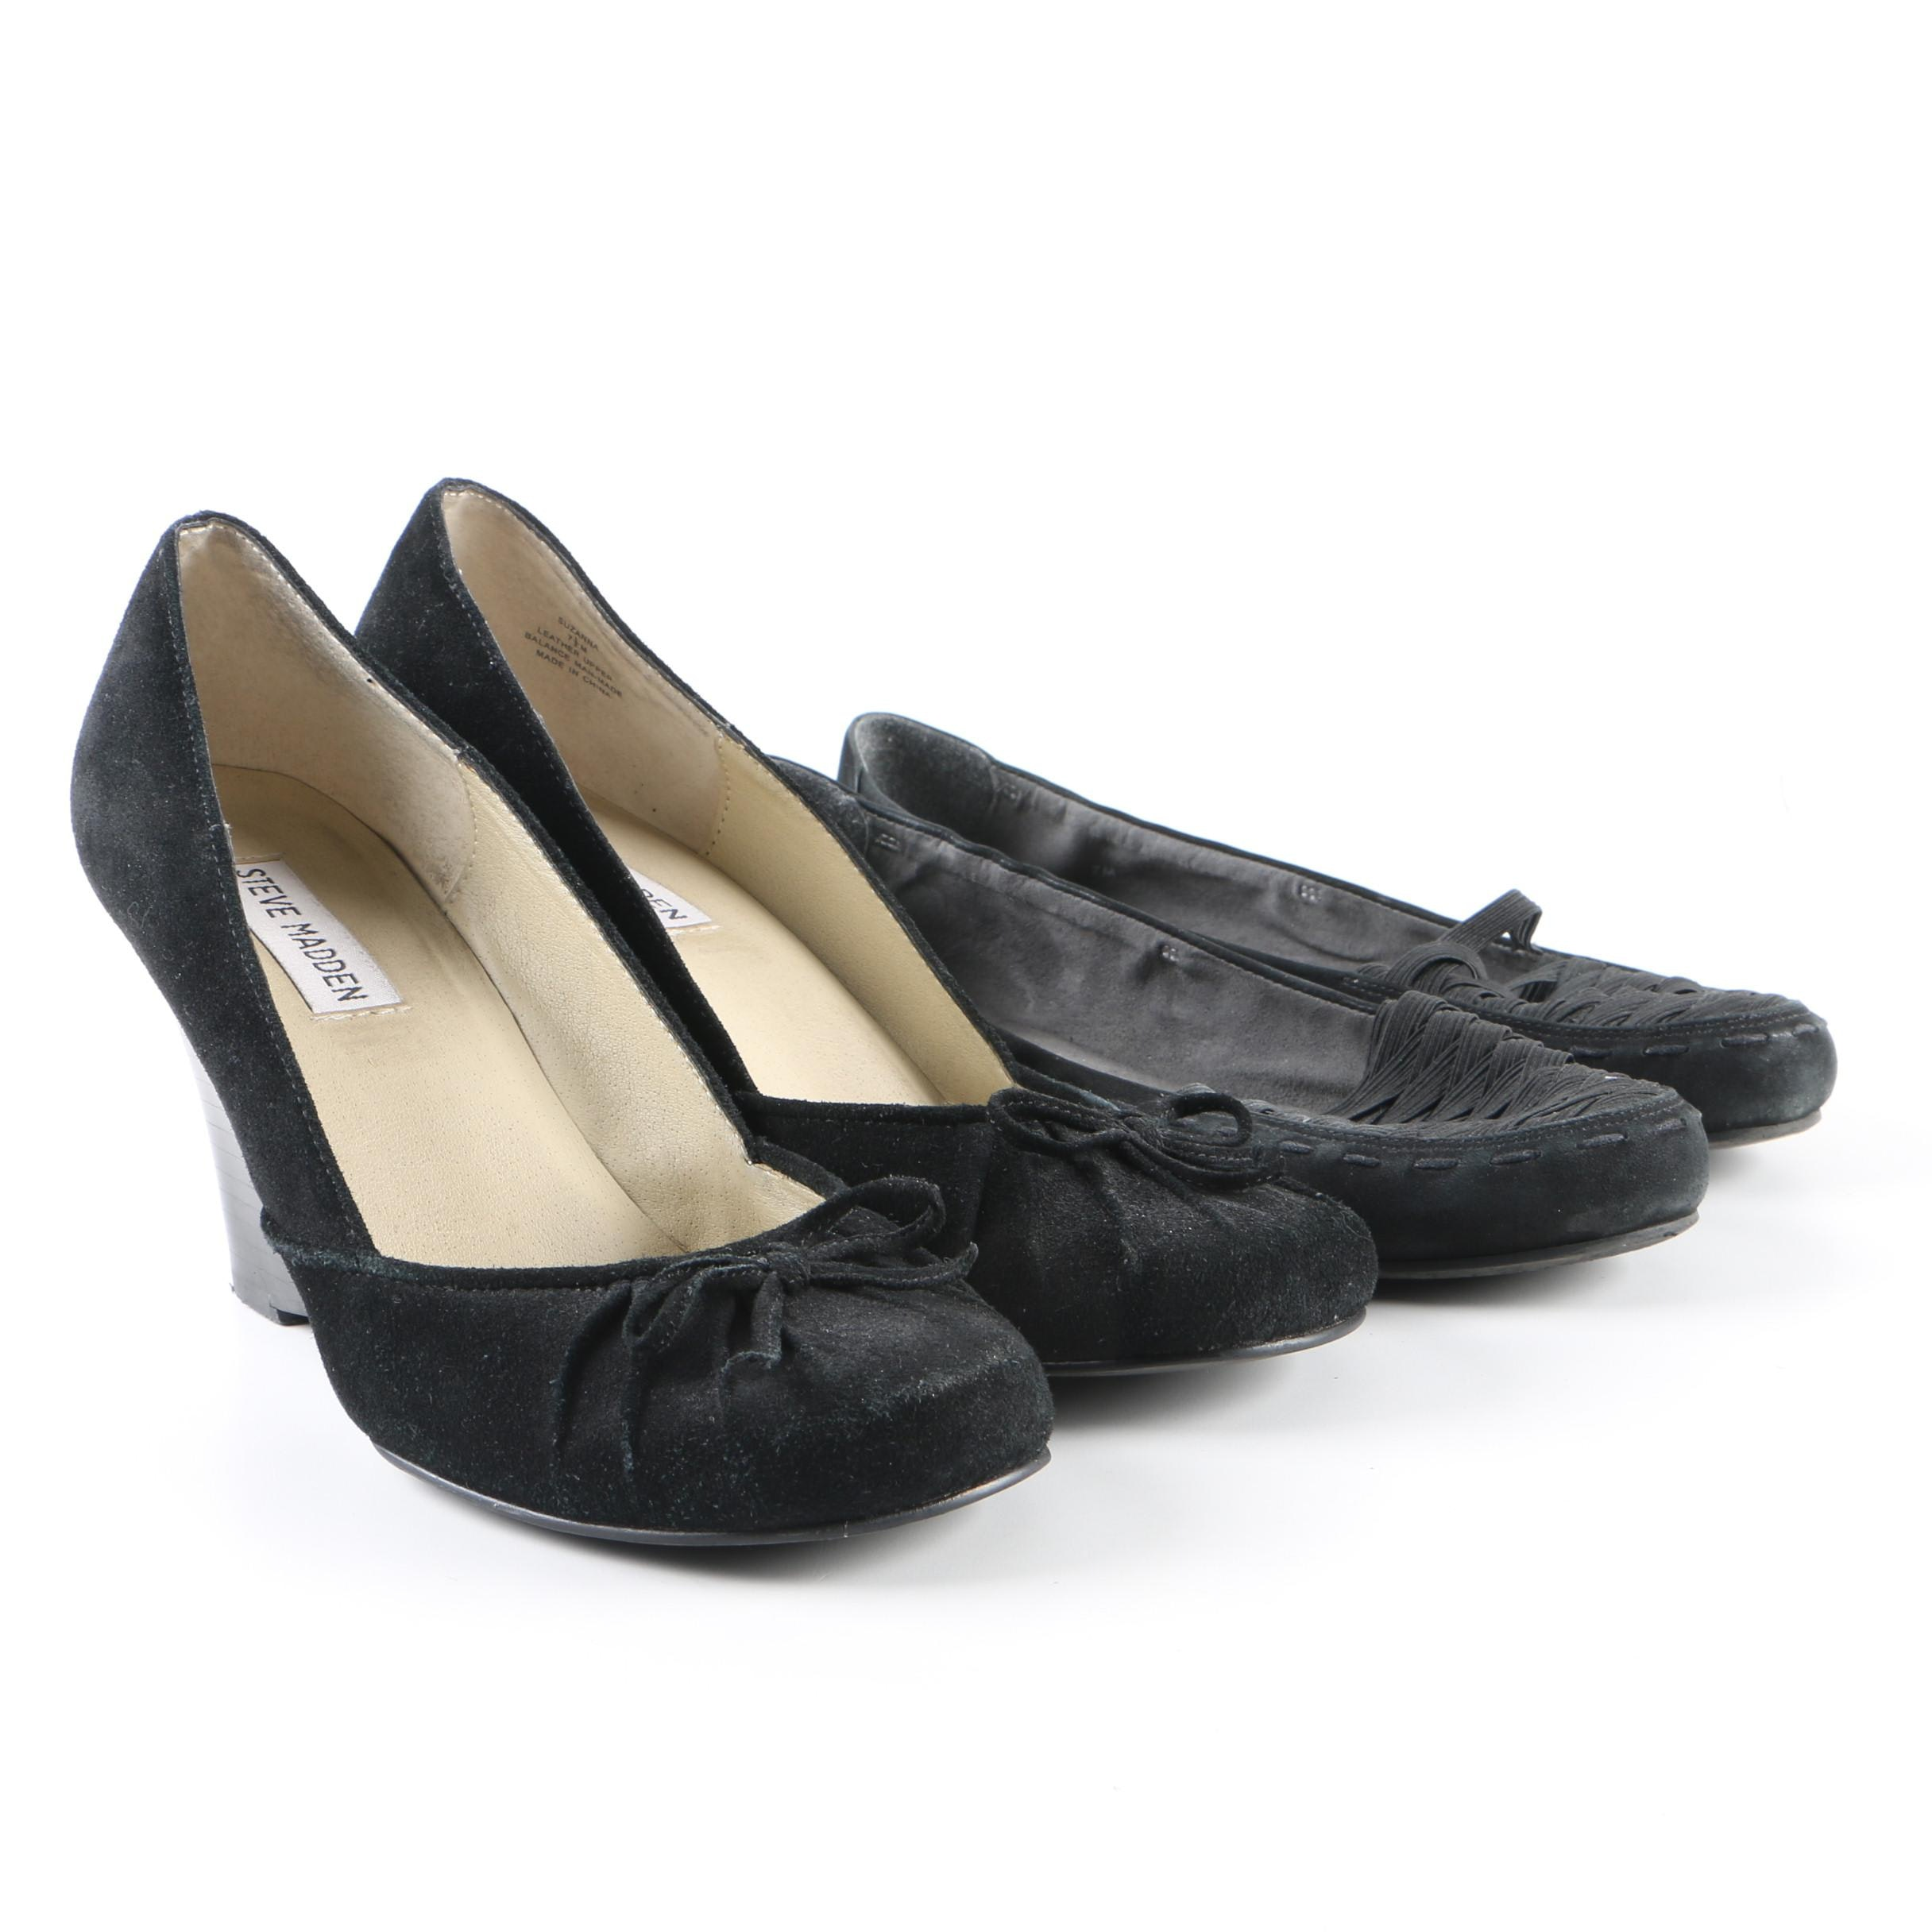 Women's Black Suede Steve Madden Wedges and Stuart Weitzman Loafers